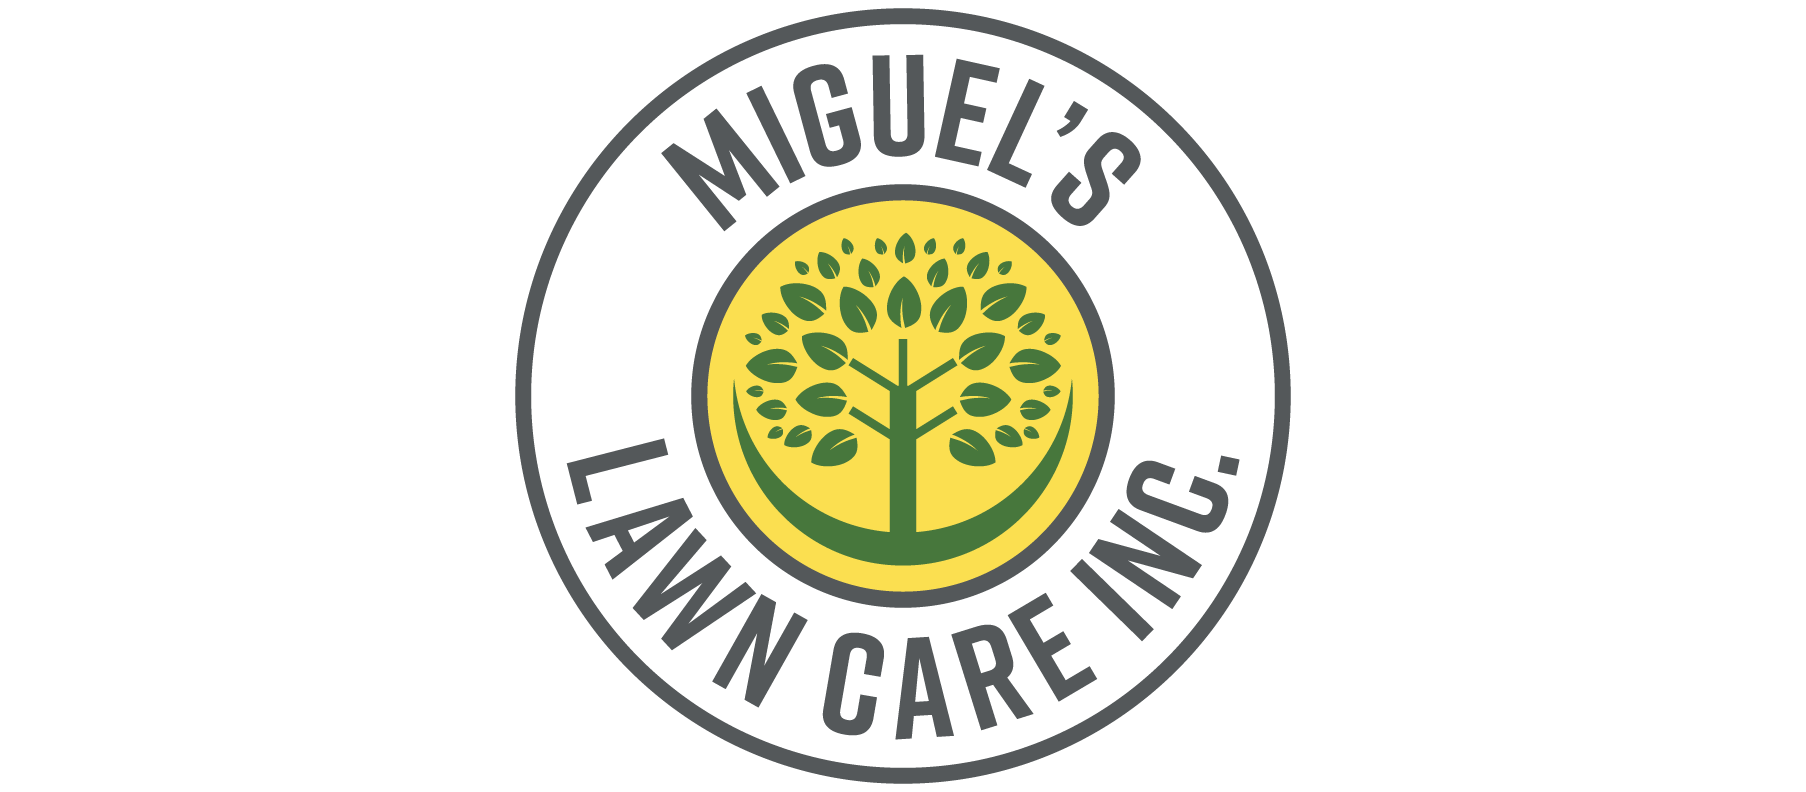 Miguel's Lawn Care Inc.